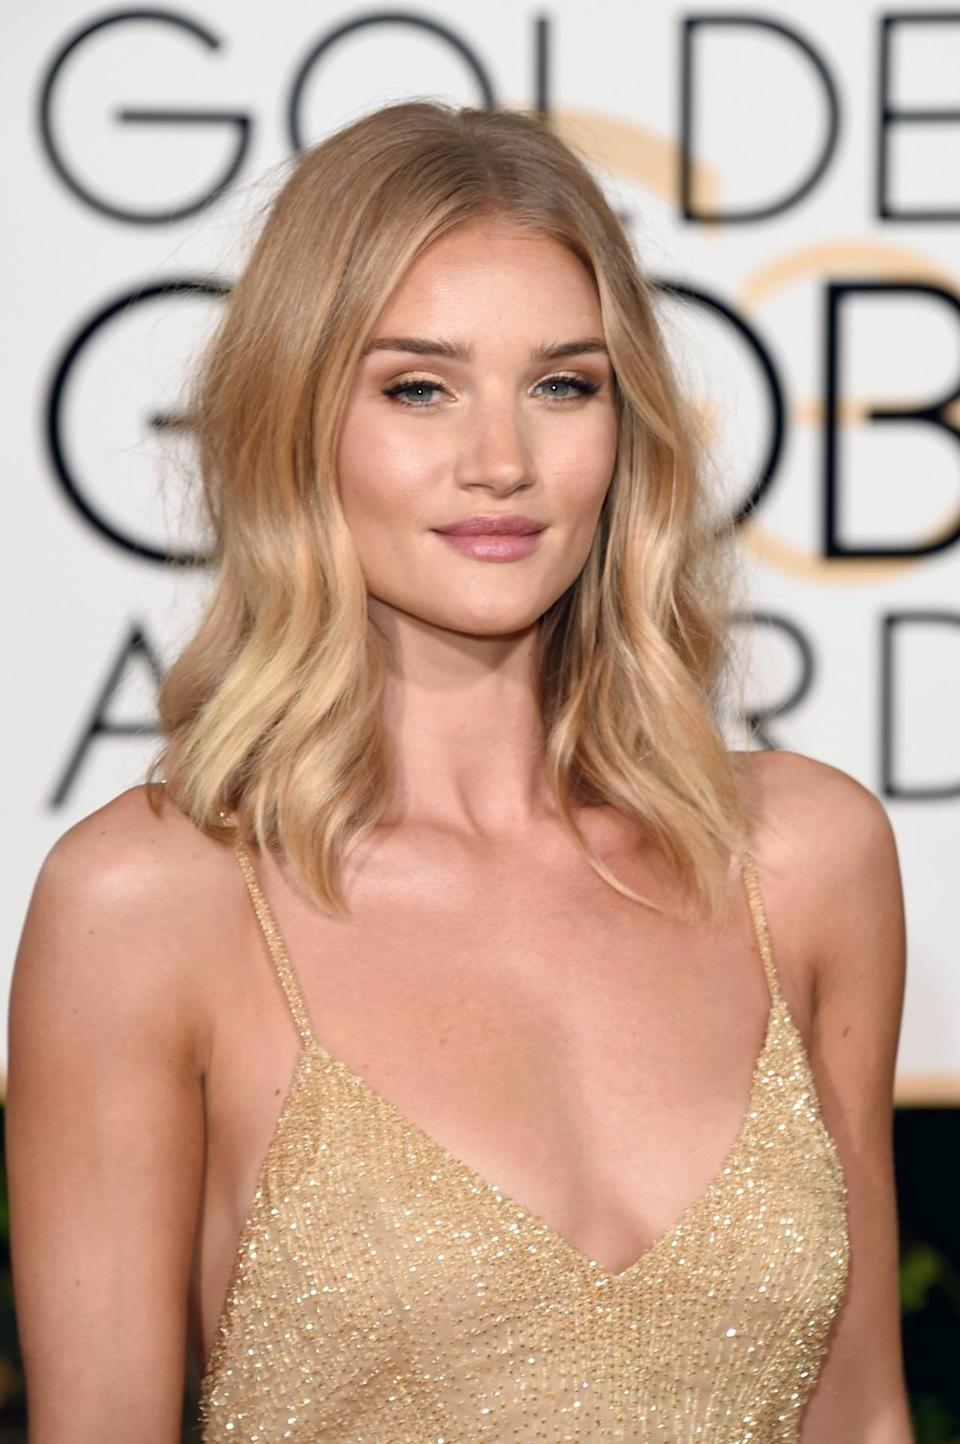 <p>The model's tan lines and Instagram beach selfies give away her vacation, but we still don't know where she jetted off to. <i>(Photo: Getty Images)</i></p>